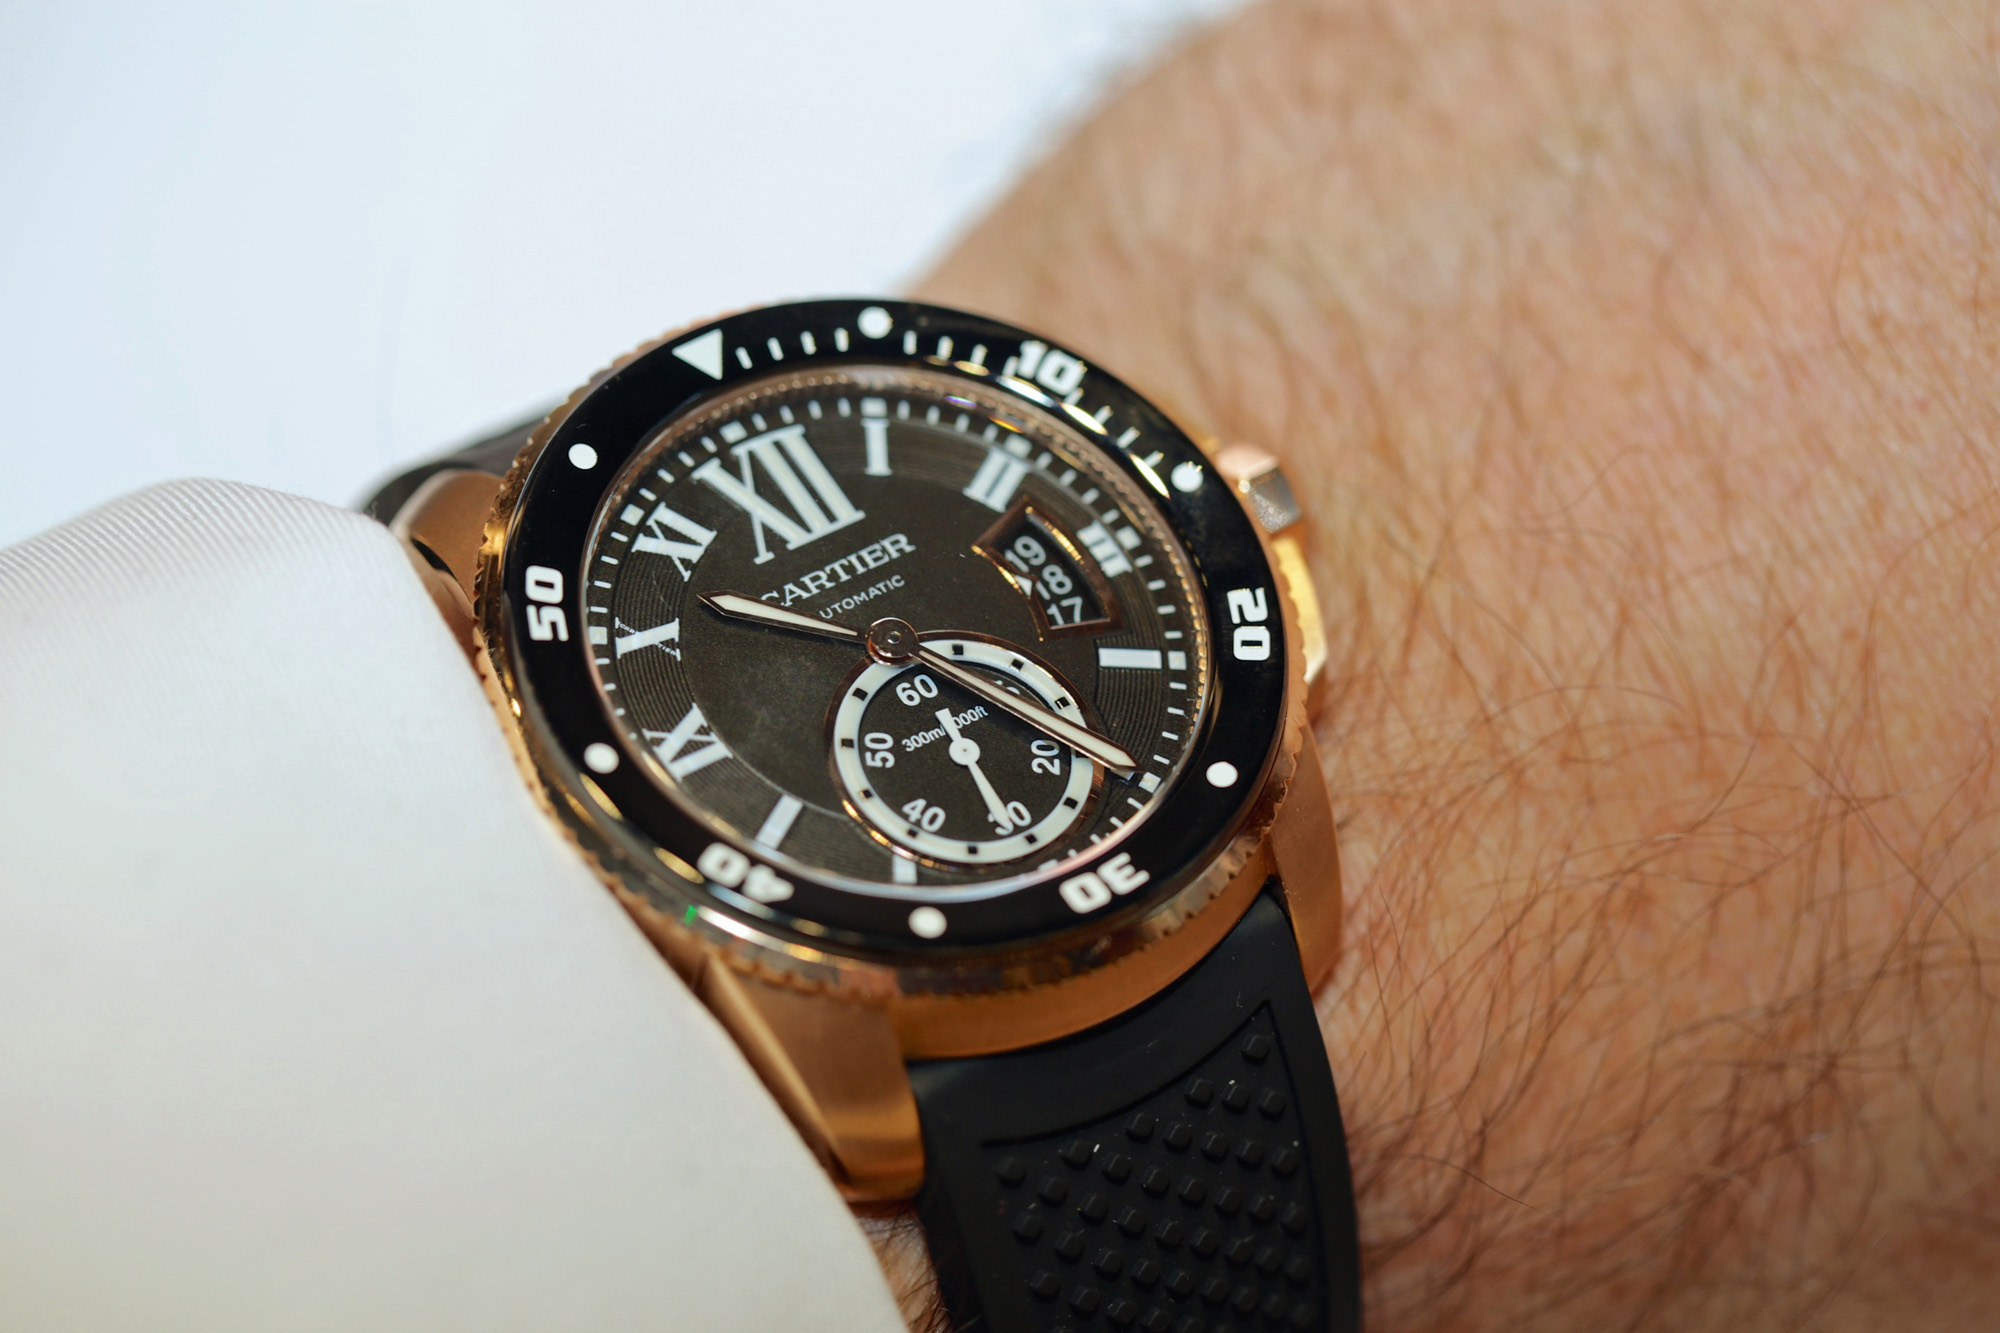 Calibre de Cartier Diver Watch 42mm Pink Gold - Wristshot